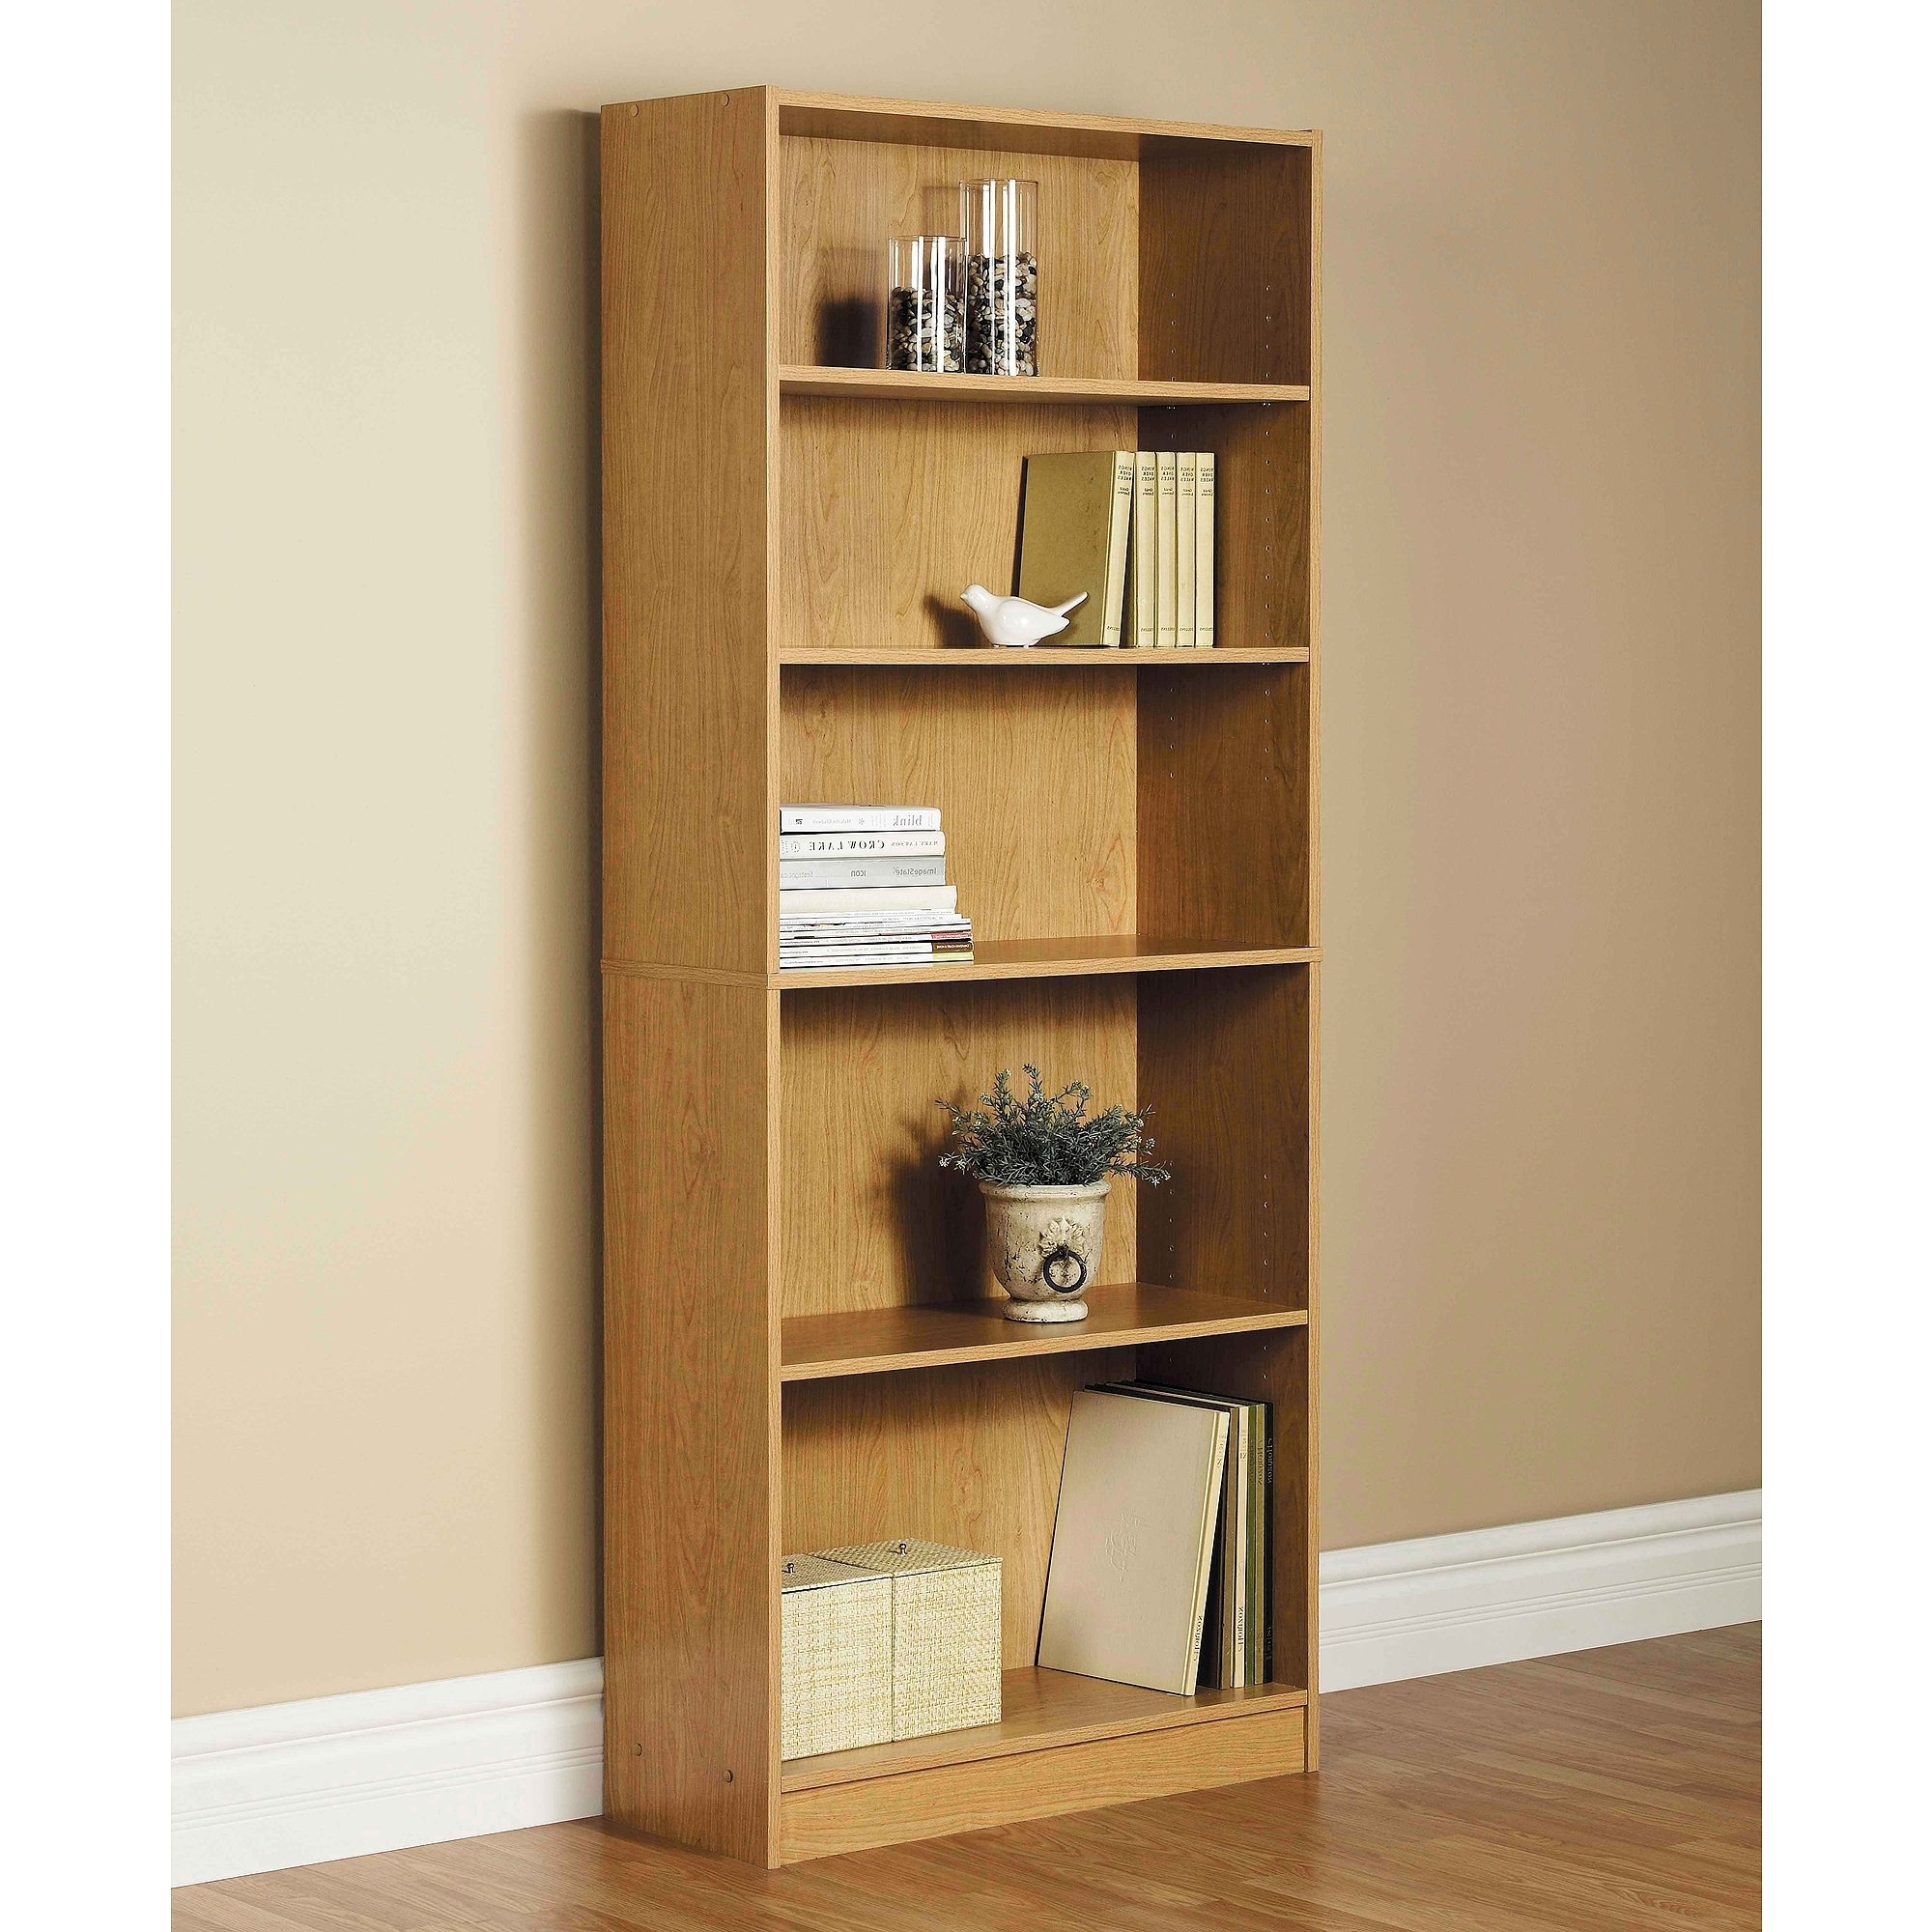 Most Recent Walmart Bookcases Within Orion Wide 5 Shelf Bookcase, Set Of 2, (Mix And Match) – Walmart (View 5 of 15)